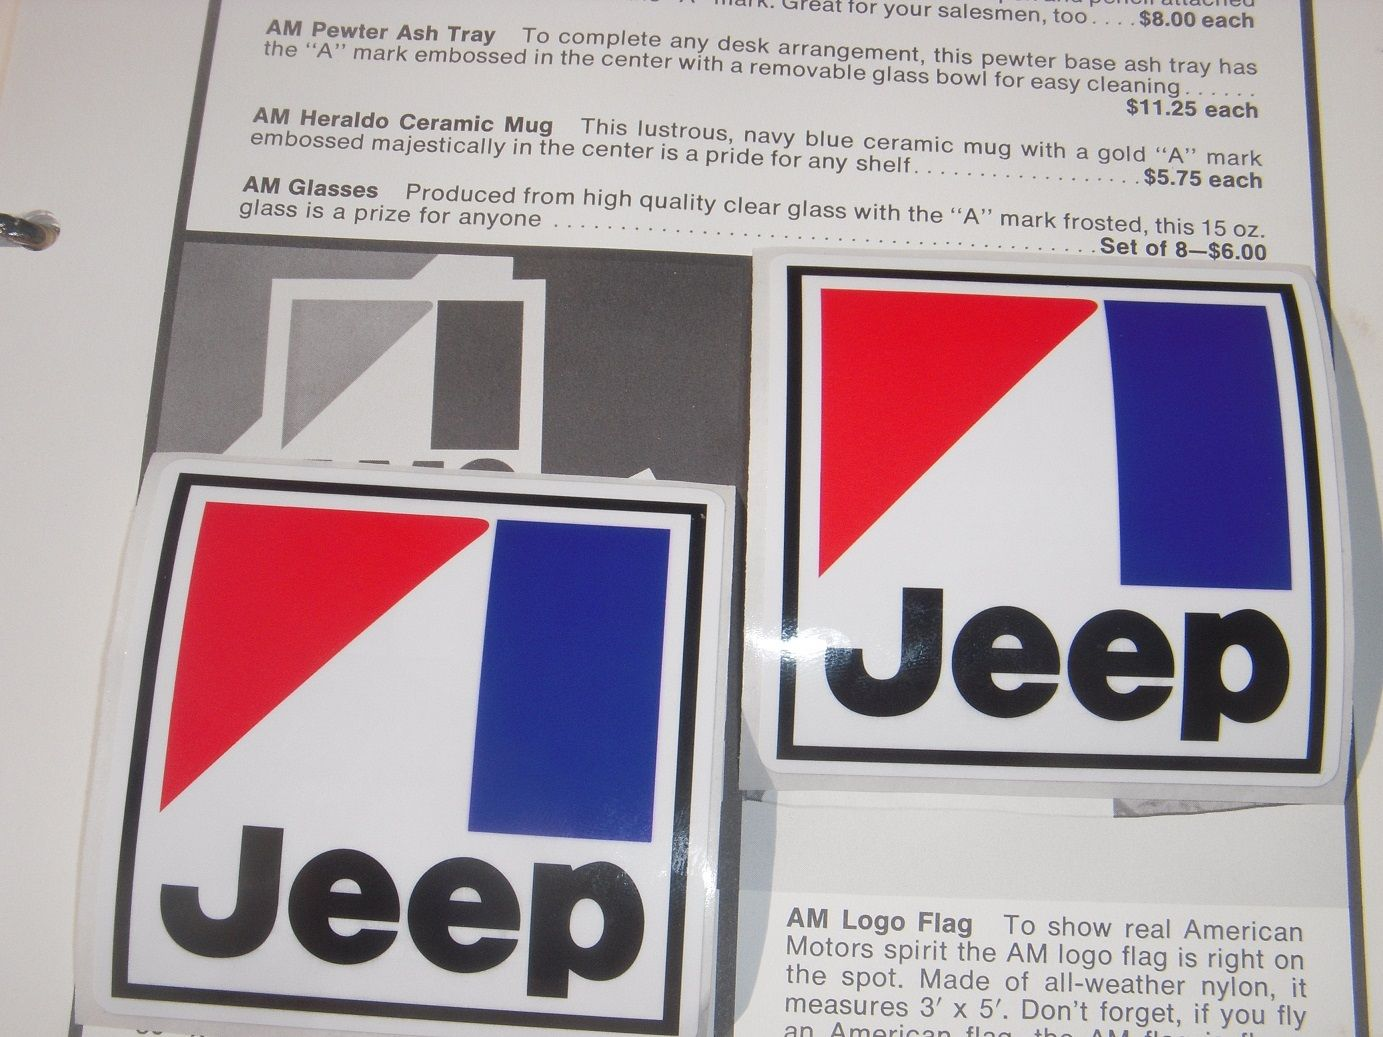 amc-jeep-dealership-decals.jpg (190372 bytes)